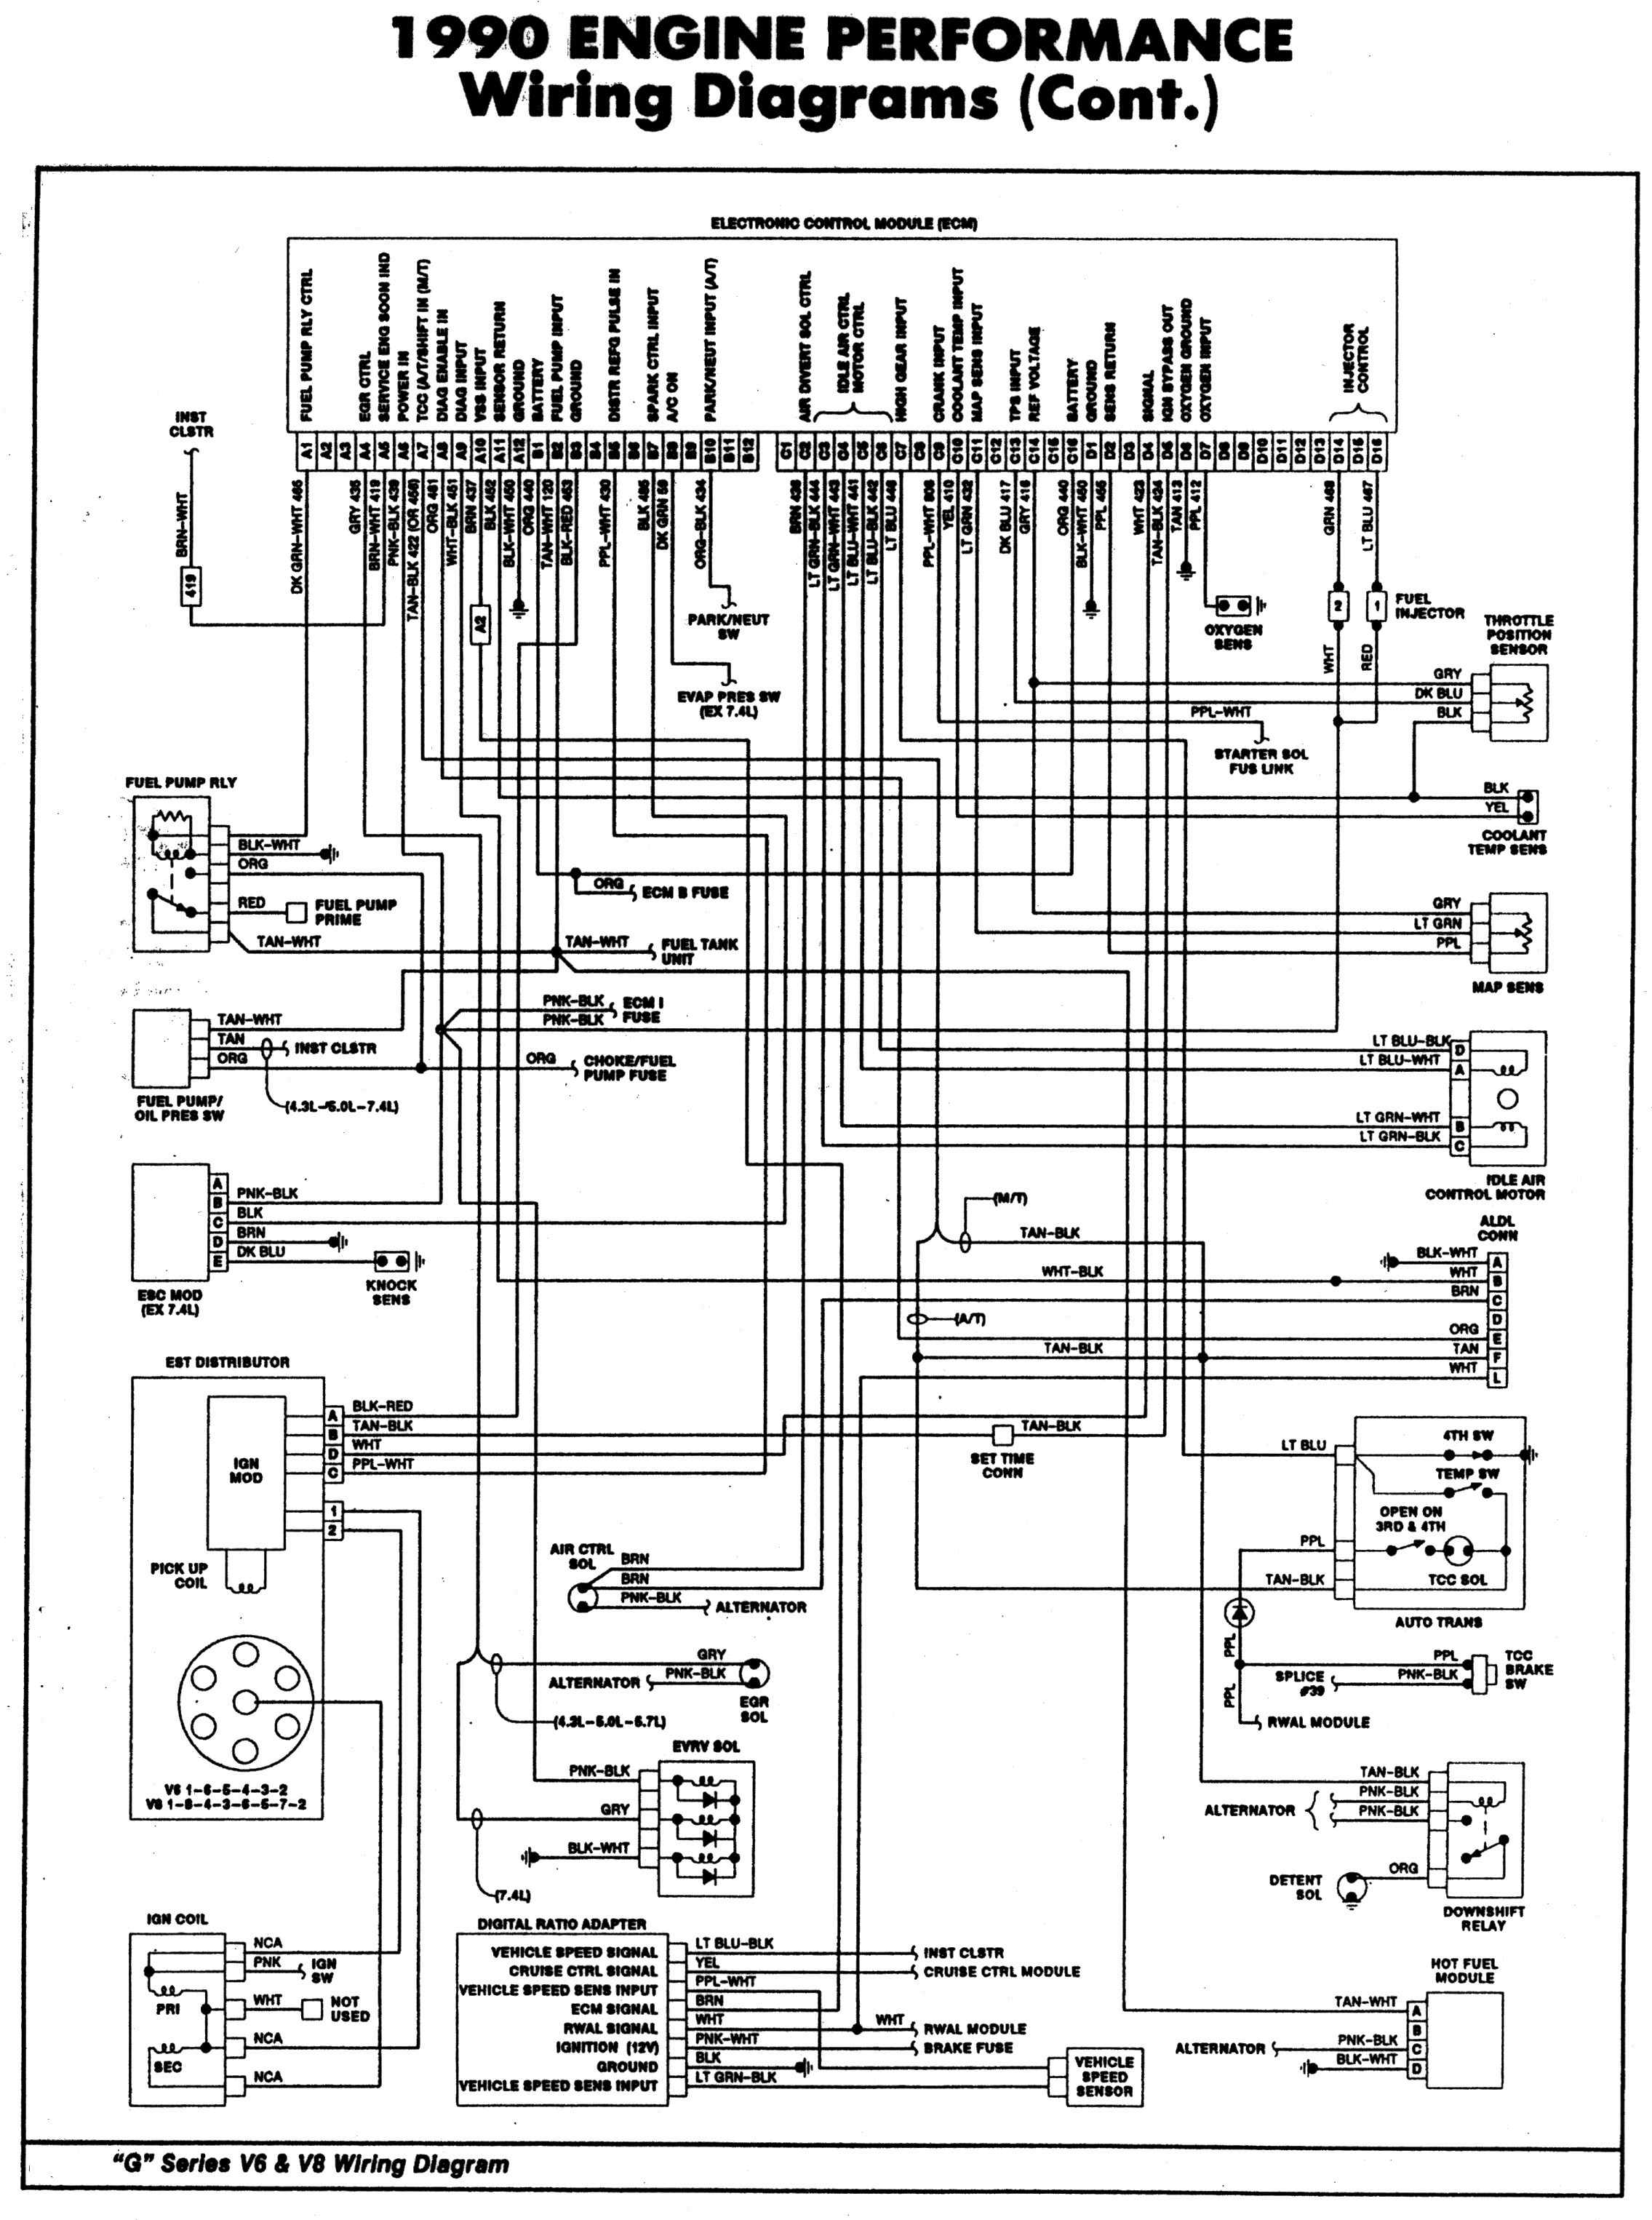 2002 Dodge Ram 1500 4 7 Engine Diagram 2004 Dodge Ram Wiring Diagram ...